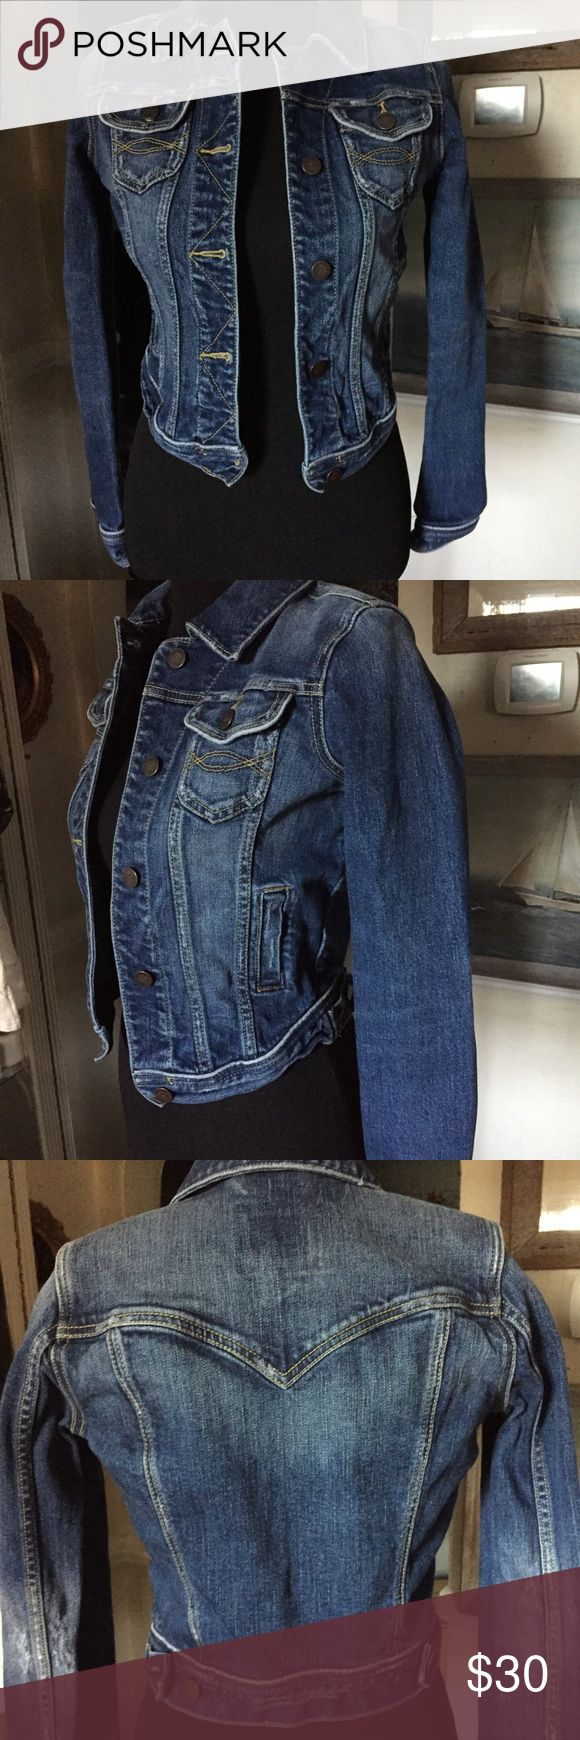 Abercrombie and Fitch Jean jacket S Abercrombie and Fitch blue denim Jean jacket distressed finish medium indigo blue great condition Abercrombie and Fitch Jackets & Coats Jean Jackets